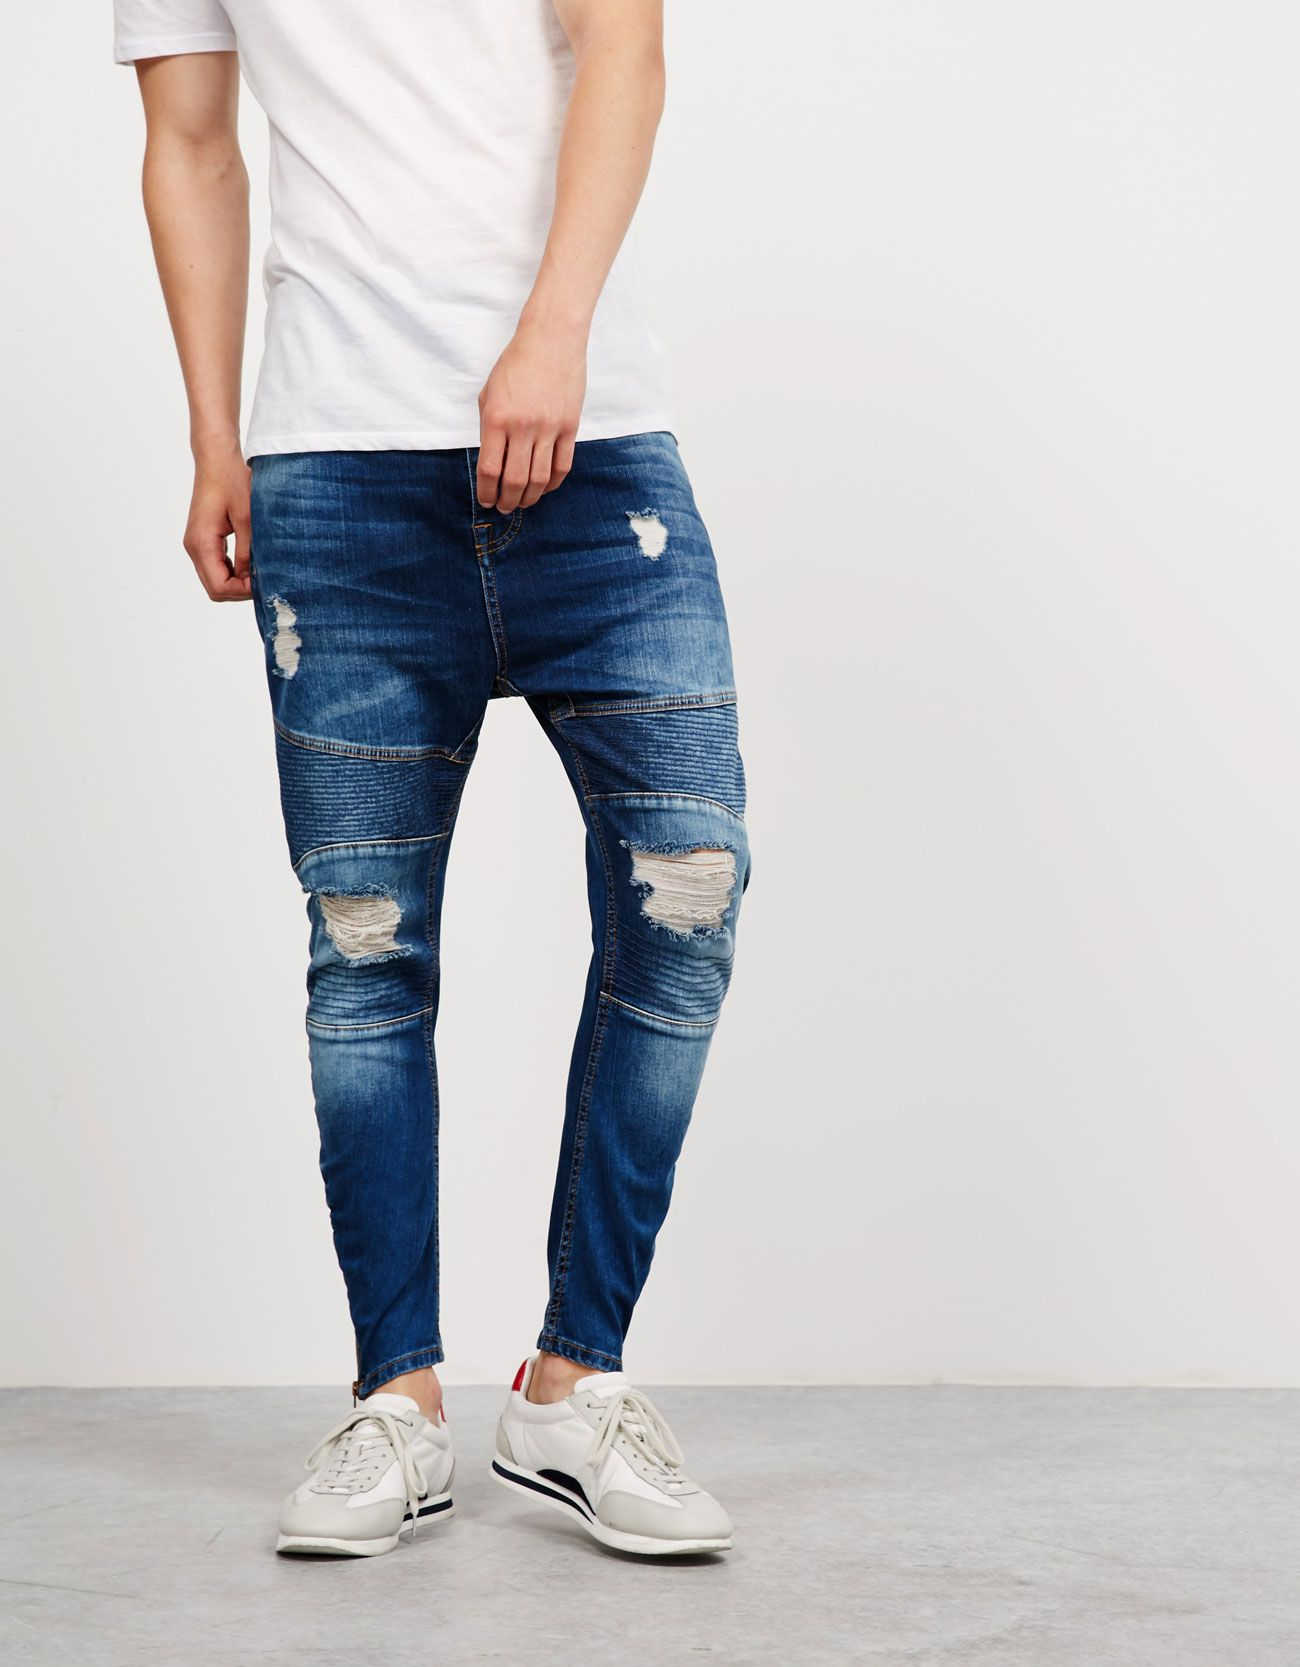 Http Www Bershka Com Es Hombre New Collection Jeans Jeans Carrot C1010046174p100469448 Html Colorid 428 Jeans Bershka Hombres